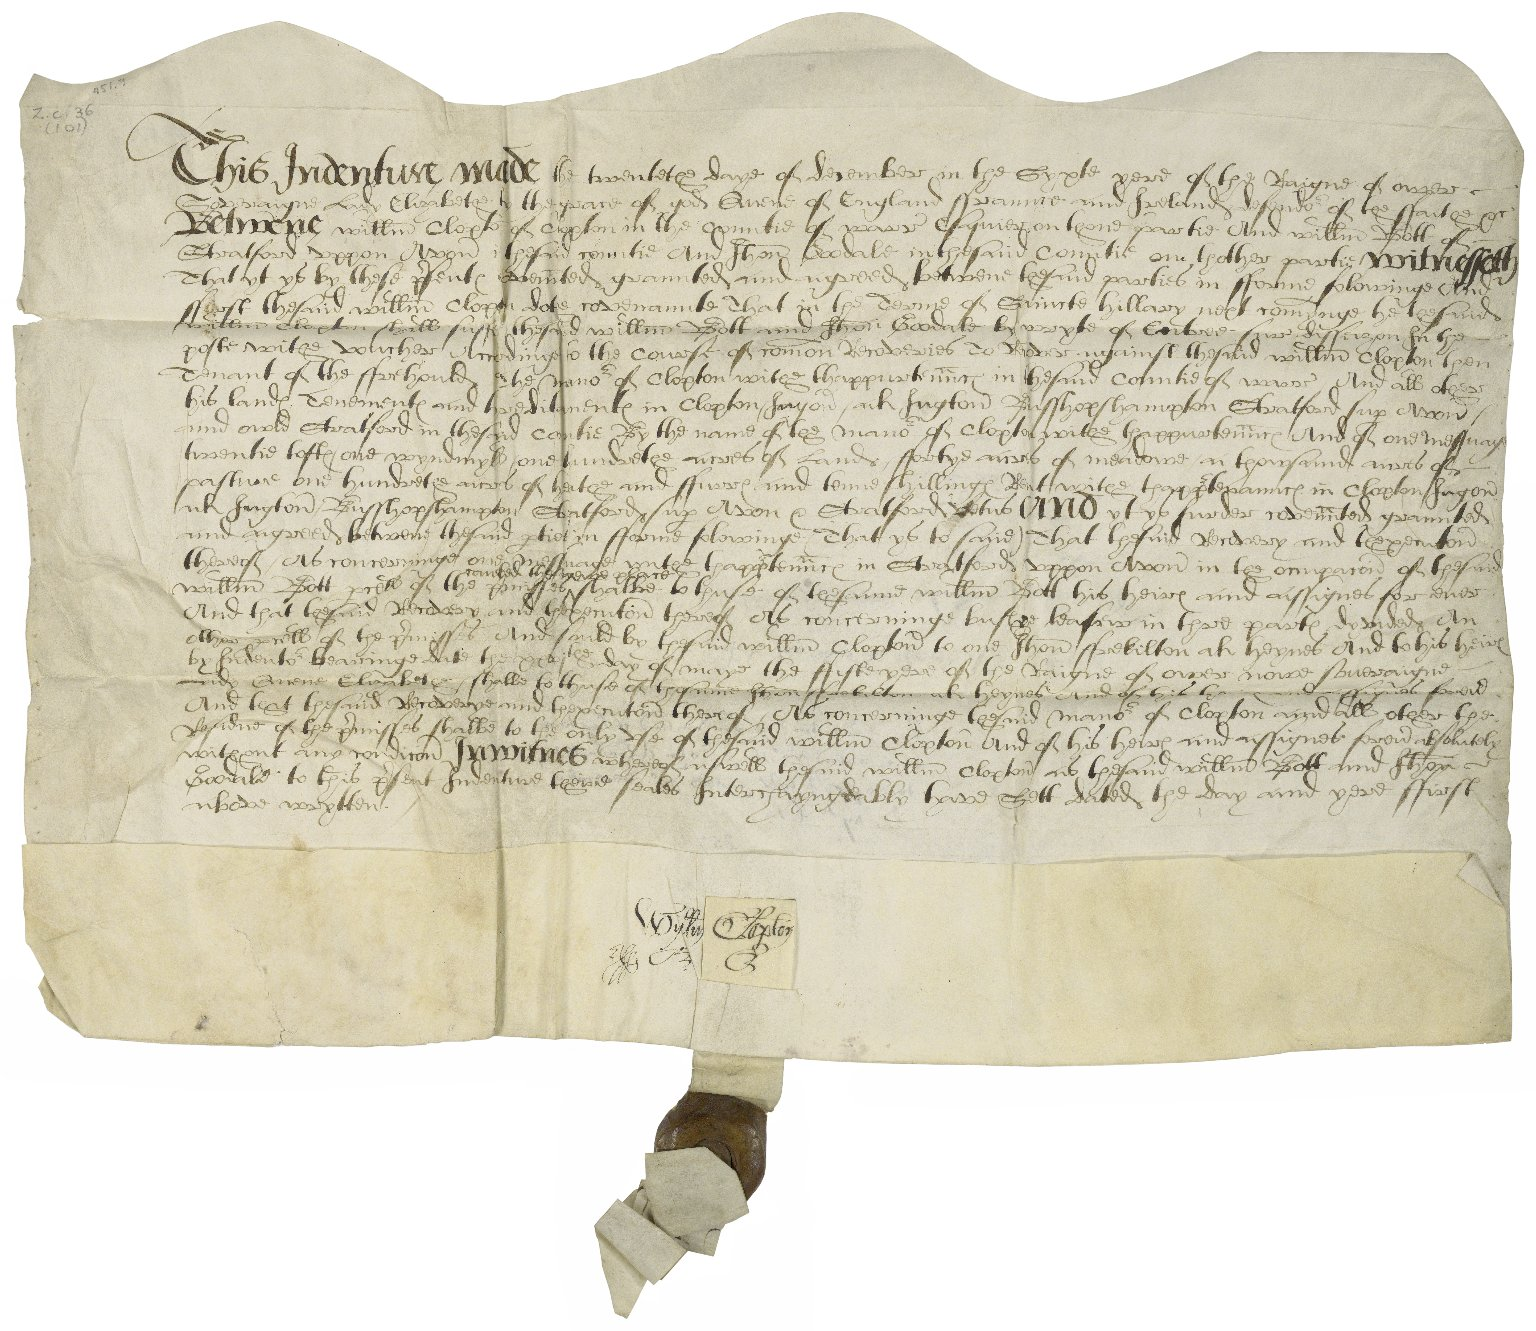 Deed to lead uses from William Clopton to William Bott of Stratford and Thomas Goodale [manuscript], 1563 December 20.